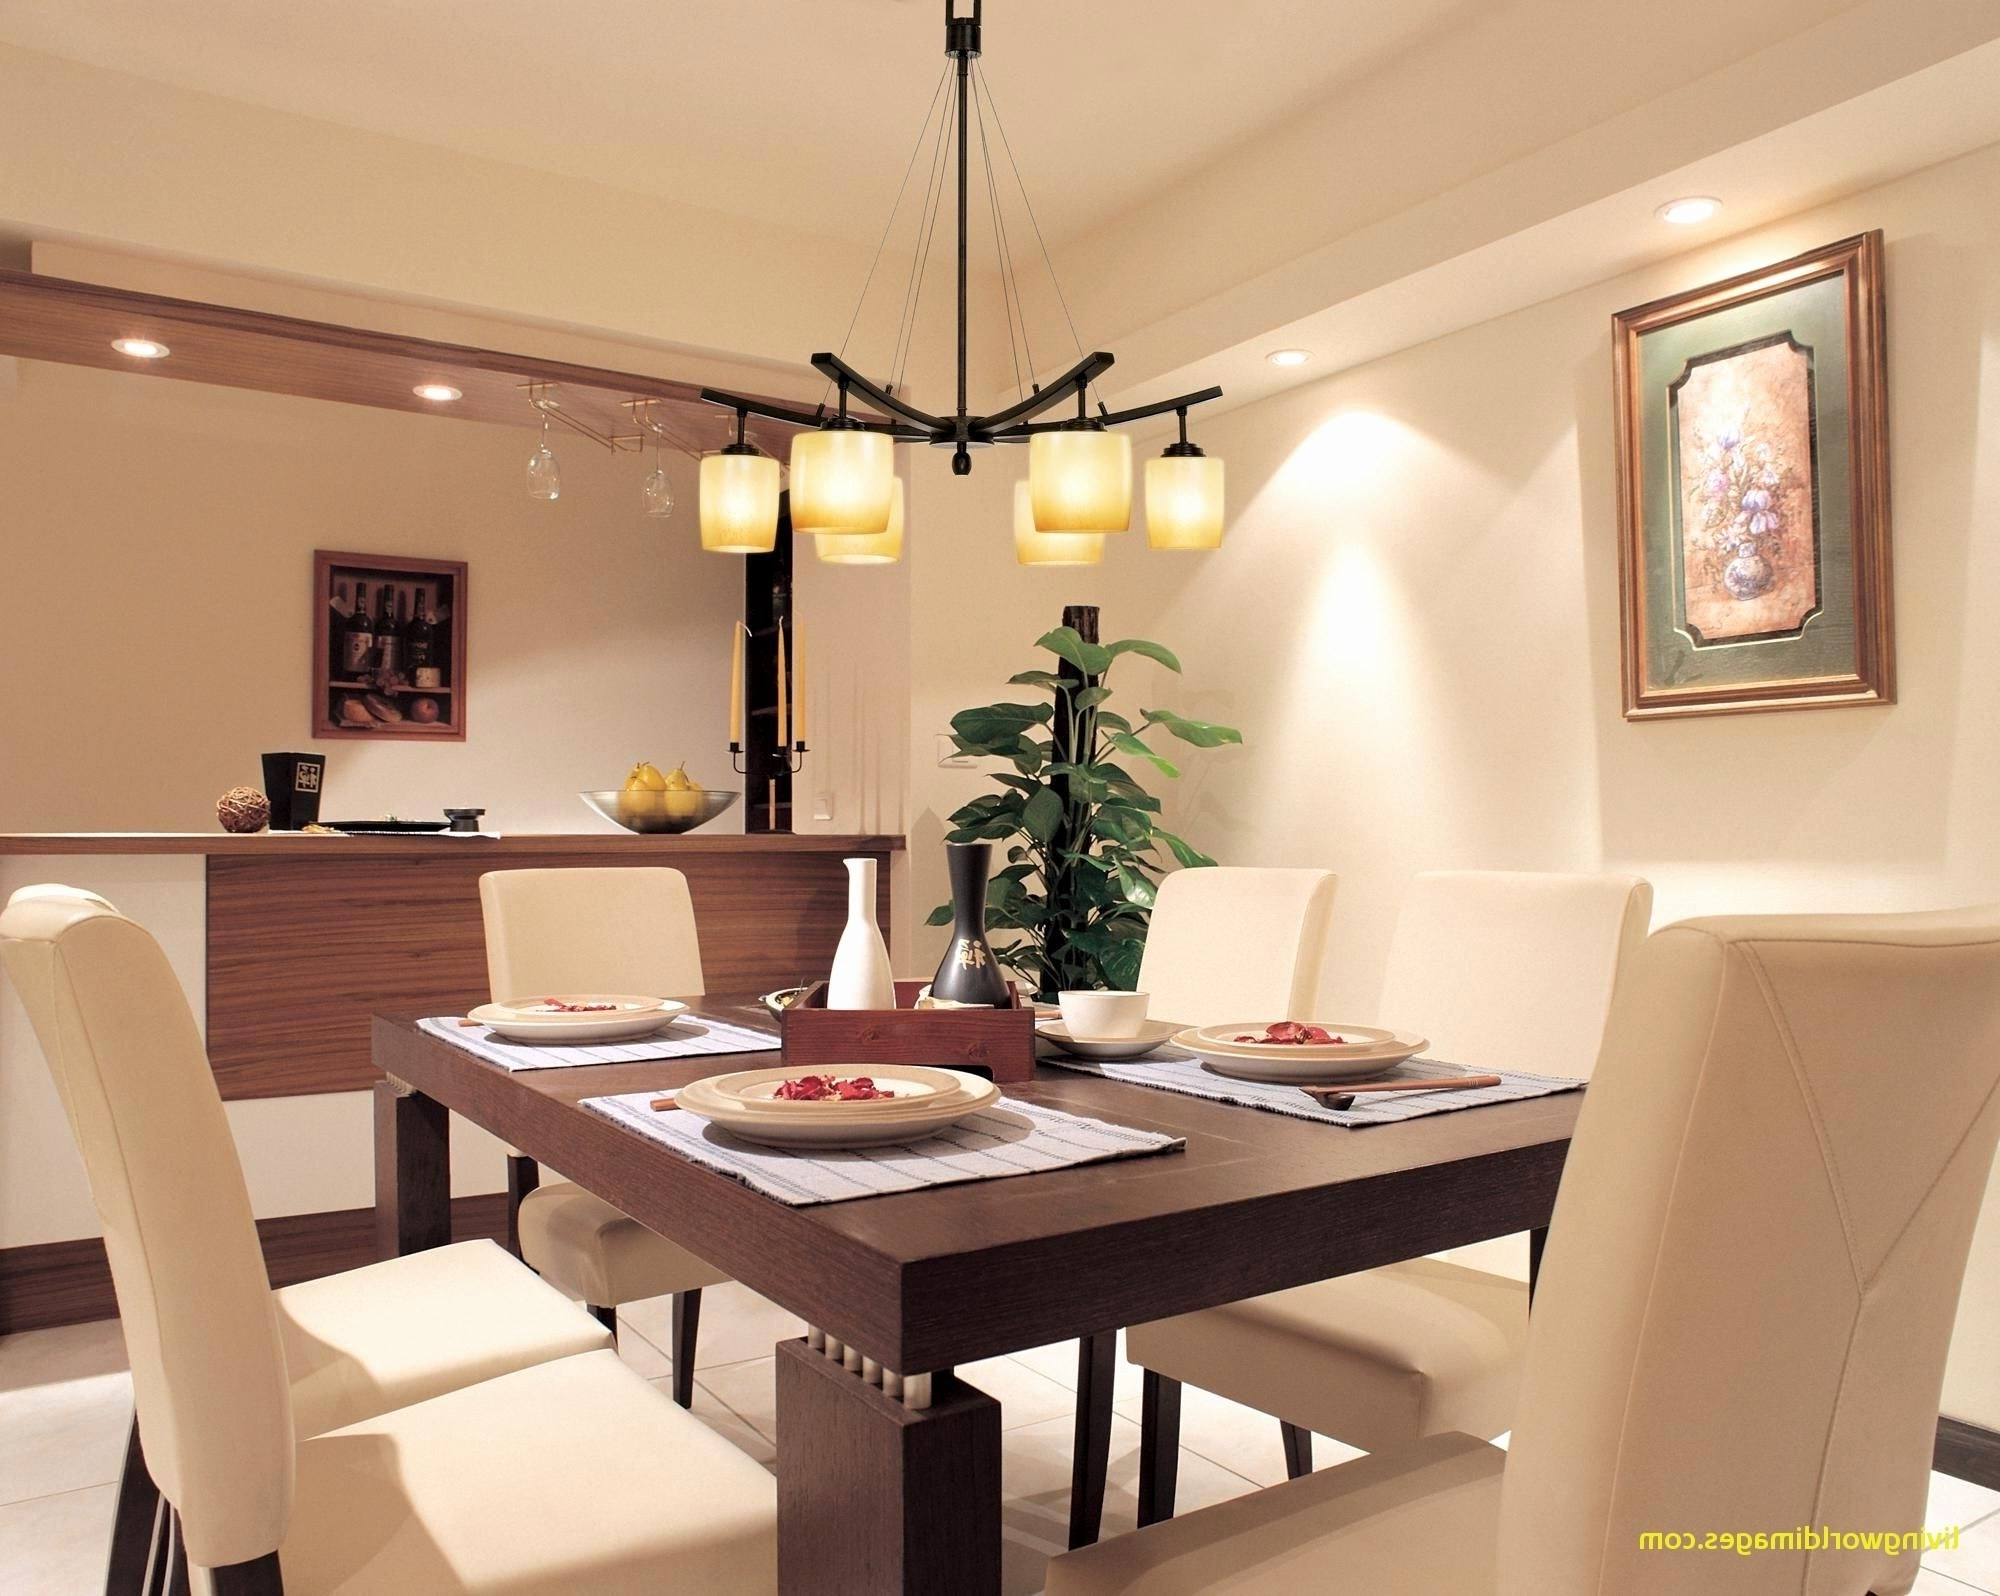 Popular Led Dining Tables Lights With Top 22 Elegant Dining Room Table With Led Lights – Welovedandelion (View 21 of 25)